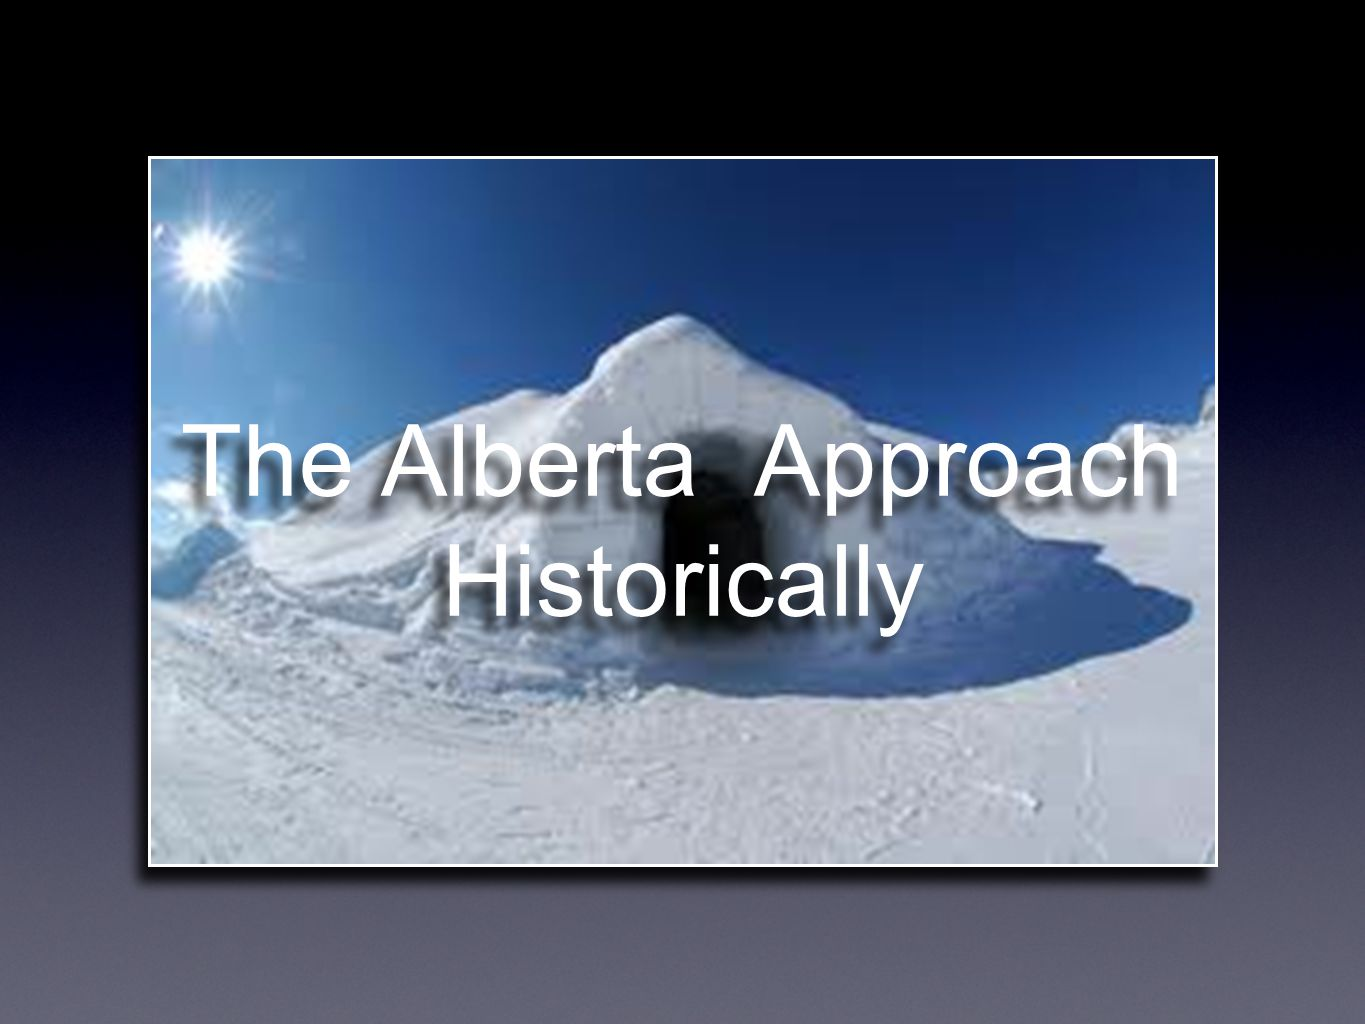 The Alberta Approach Historically